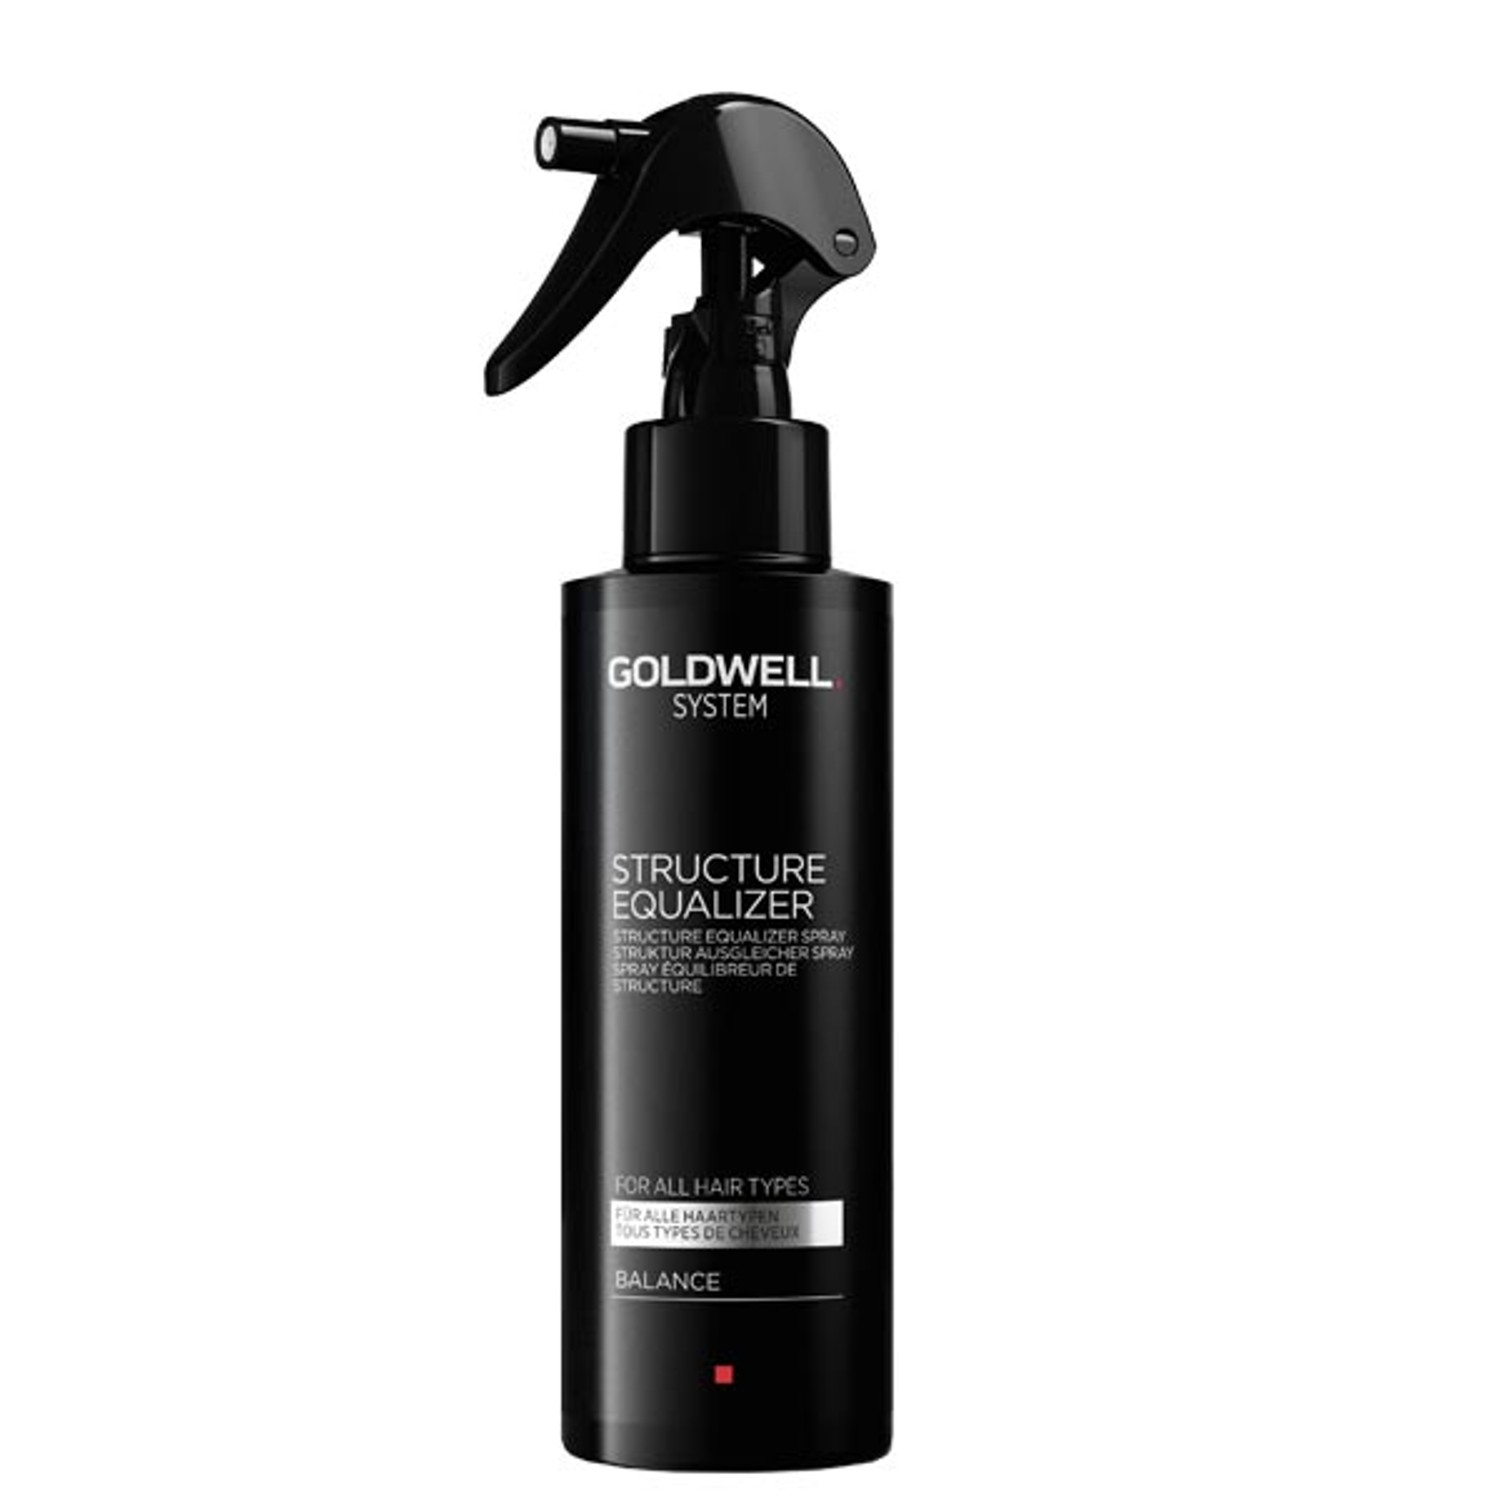 GOLDWELL System Structure Equalizier 150 ml